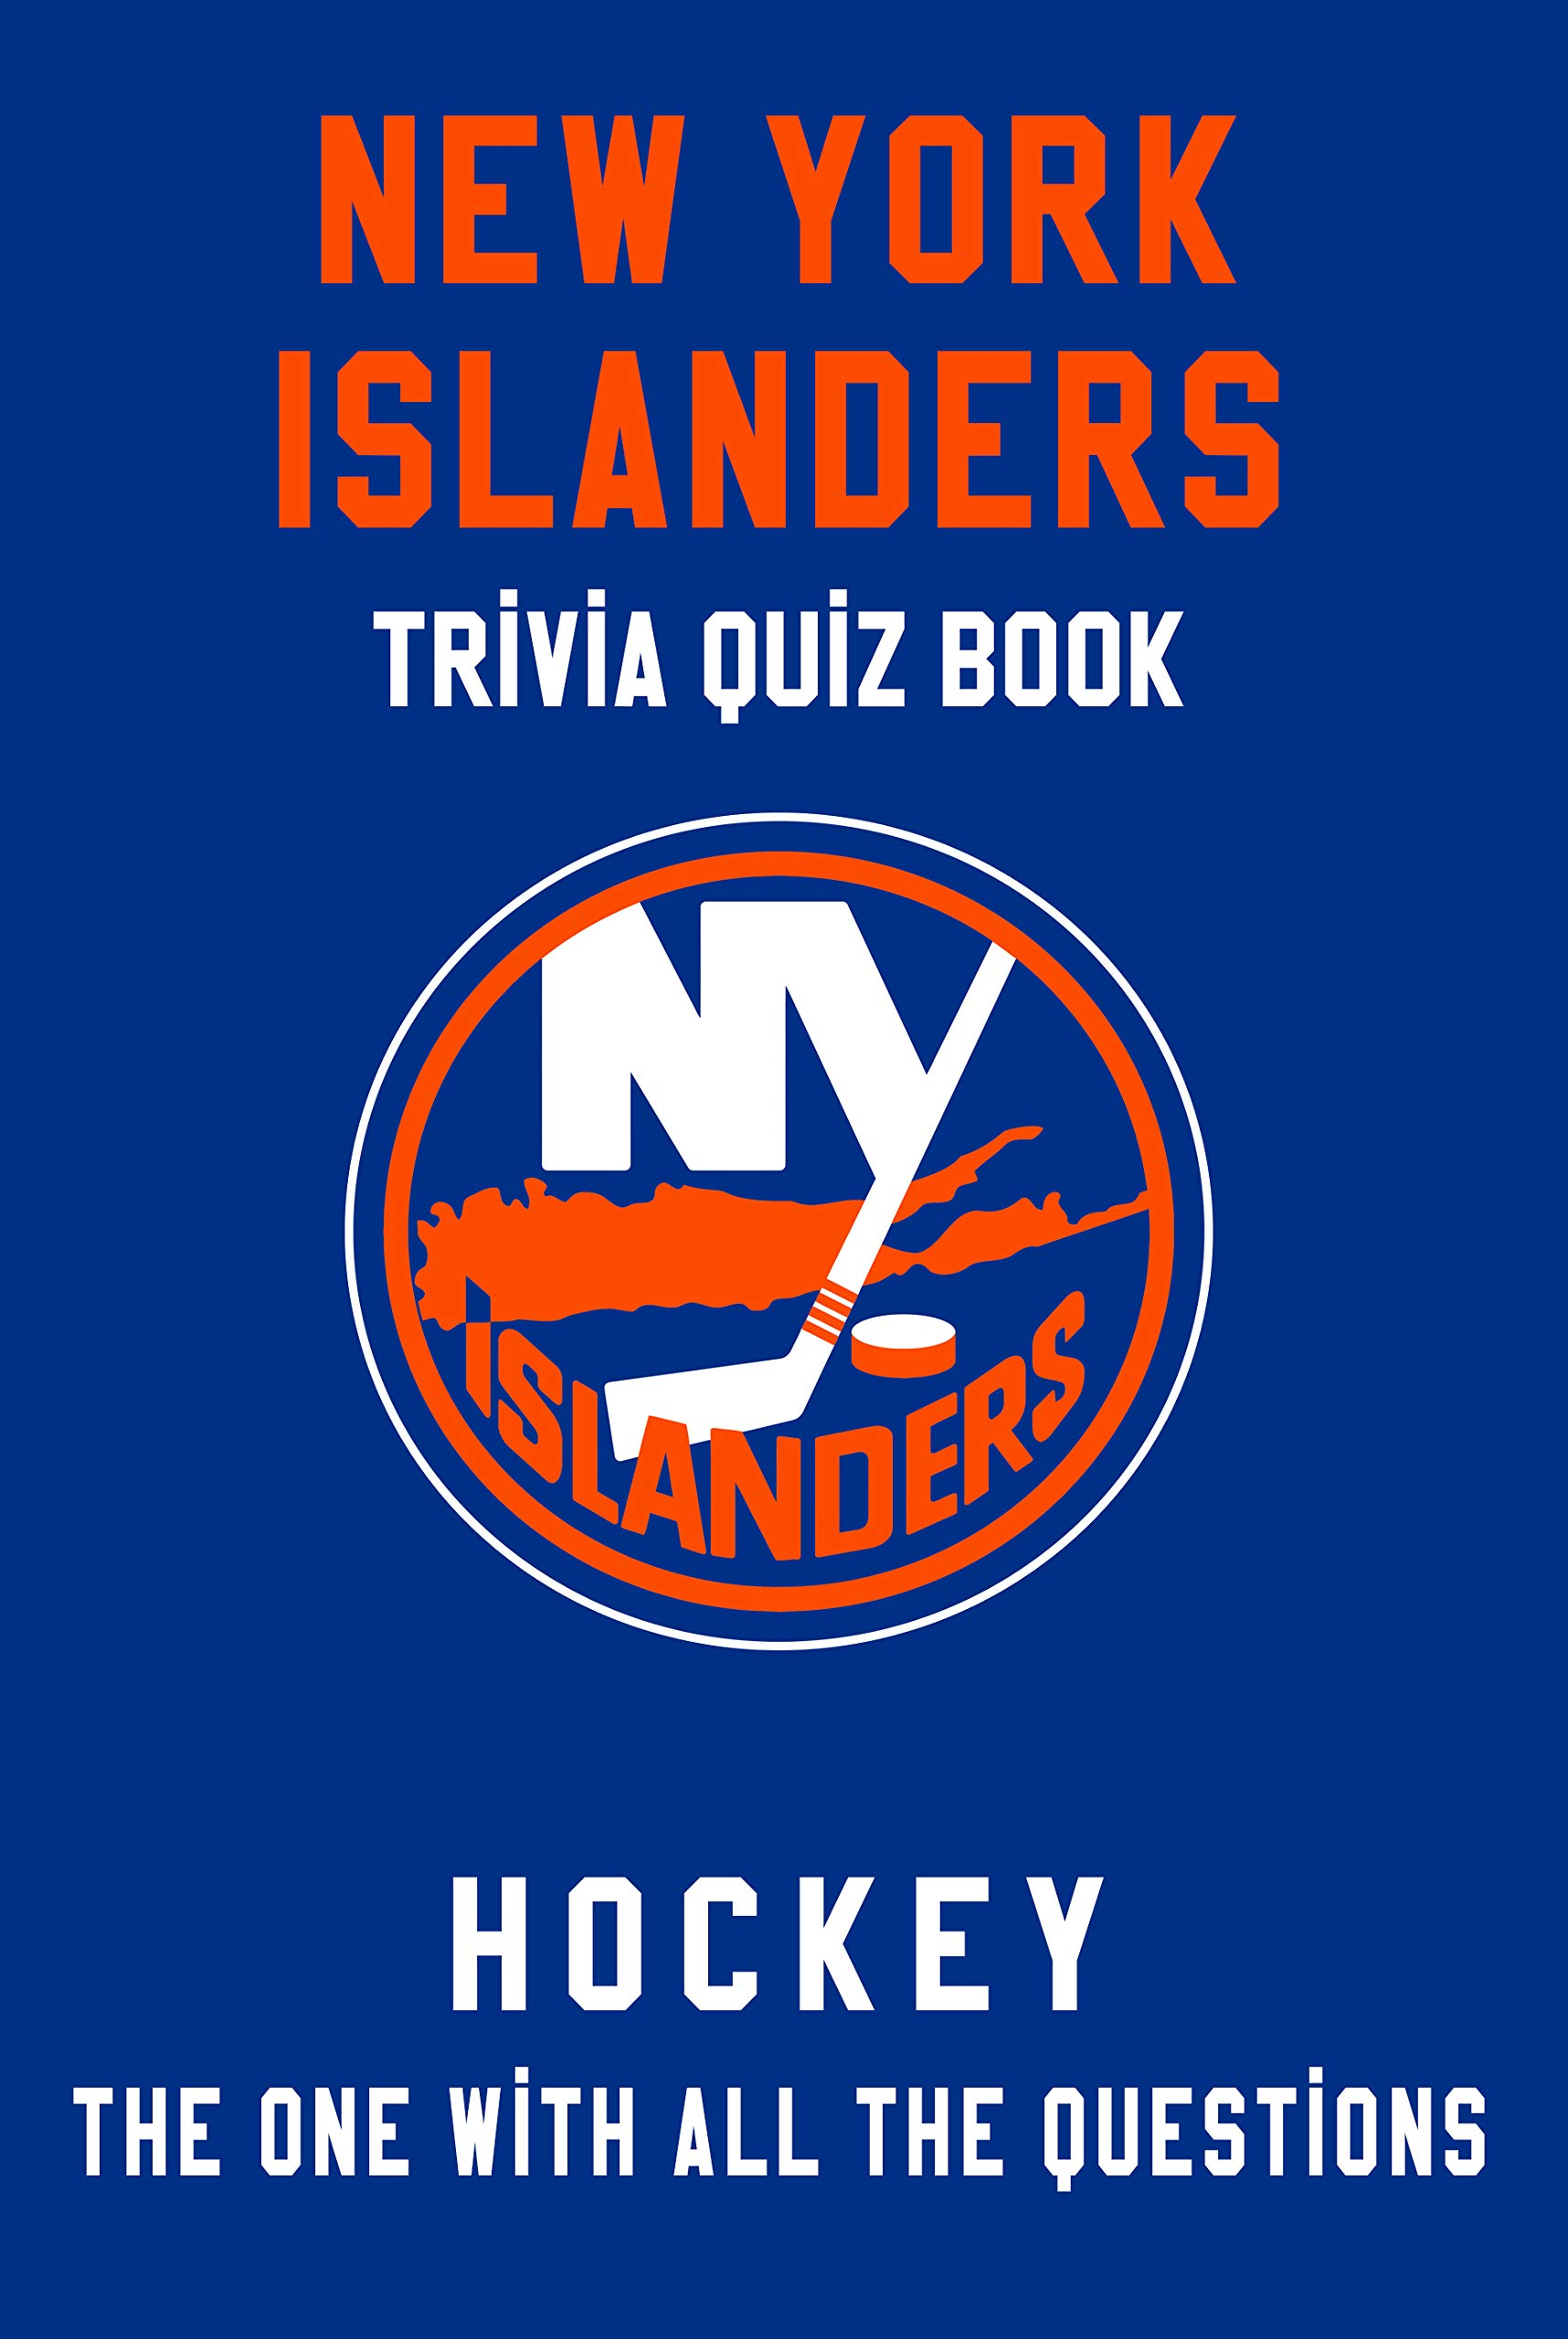 Image OfNew York Islanders Trivia Quiz Book - Hockey - The One With All The Questions: NHL Hockey Fan - Gift For Fan Of New York I...